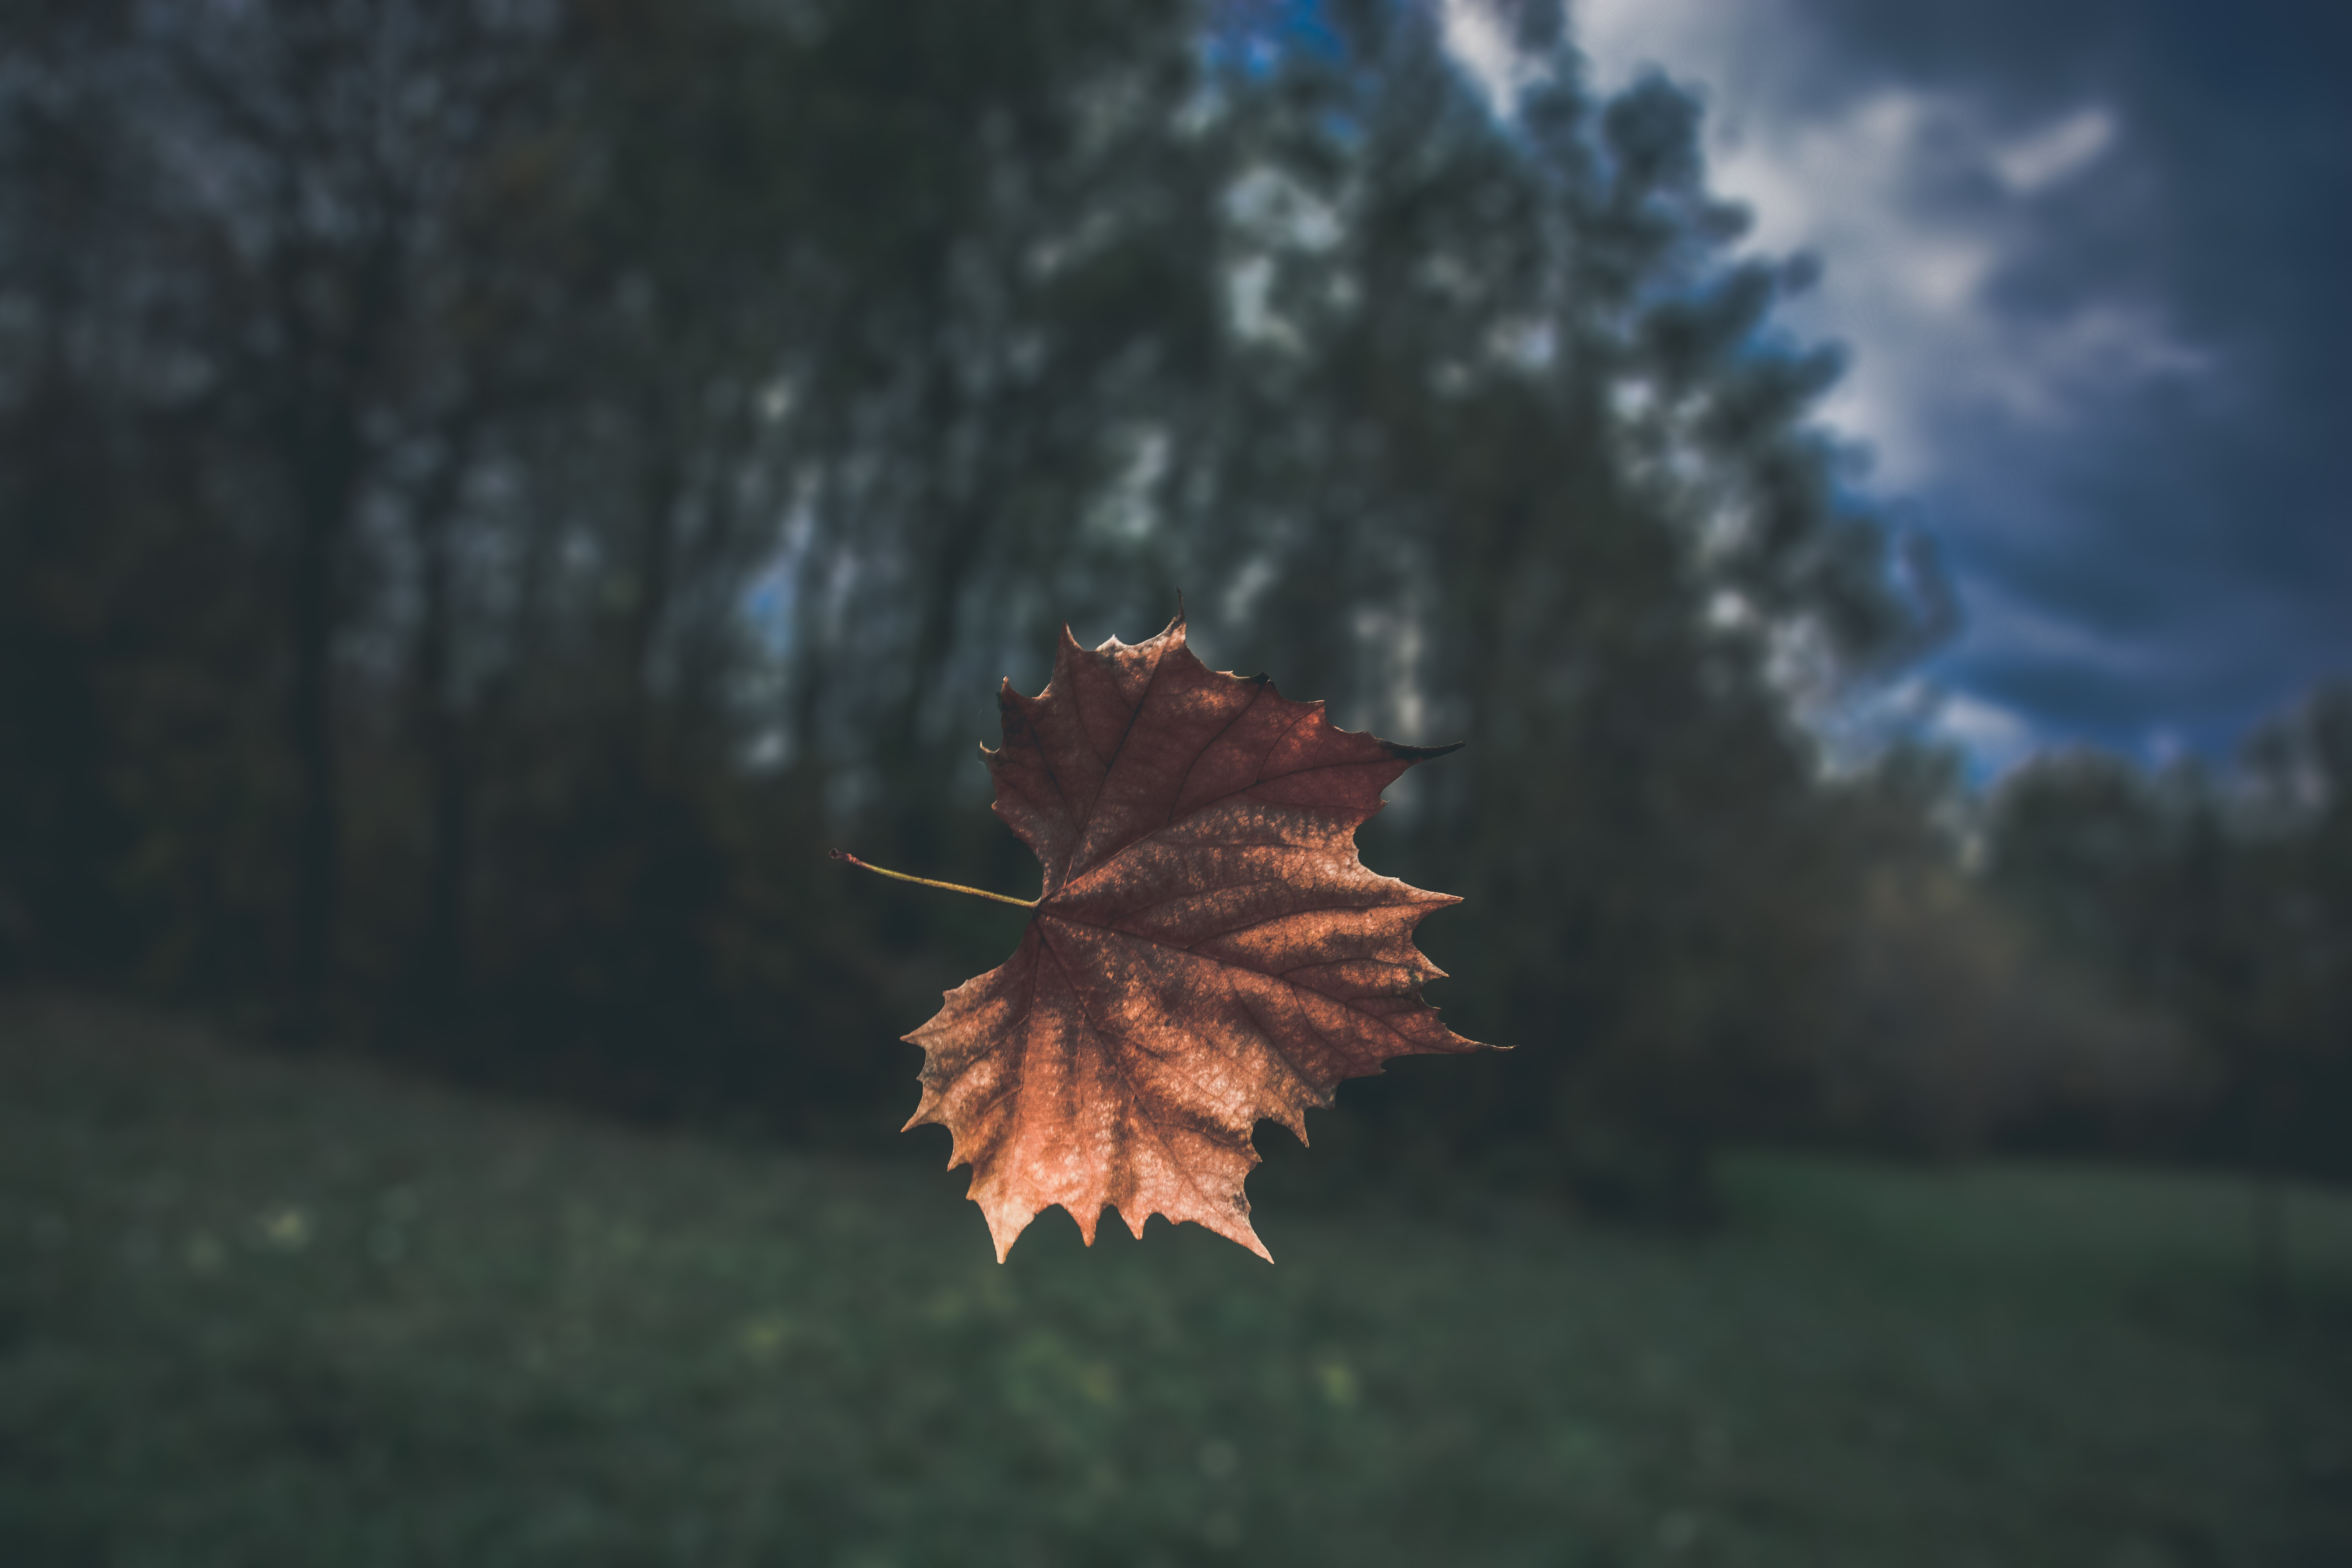 A brown autumn leaf suspended in the air